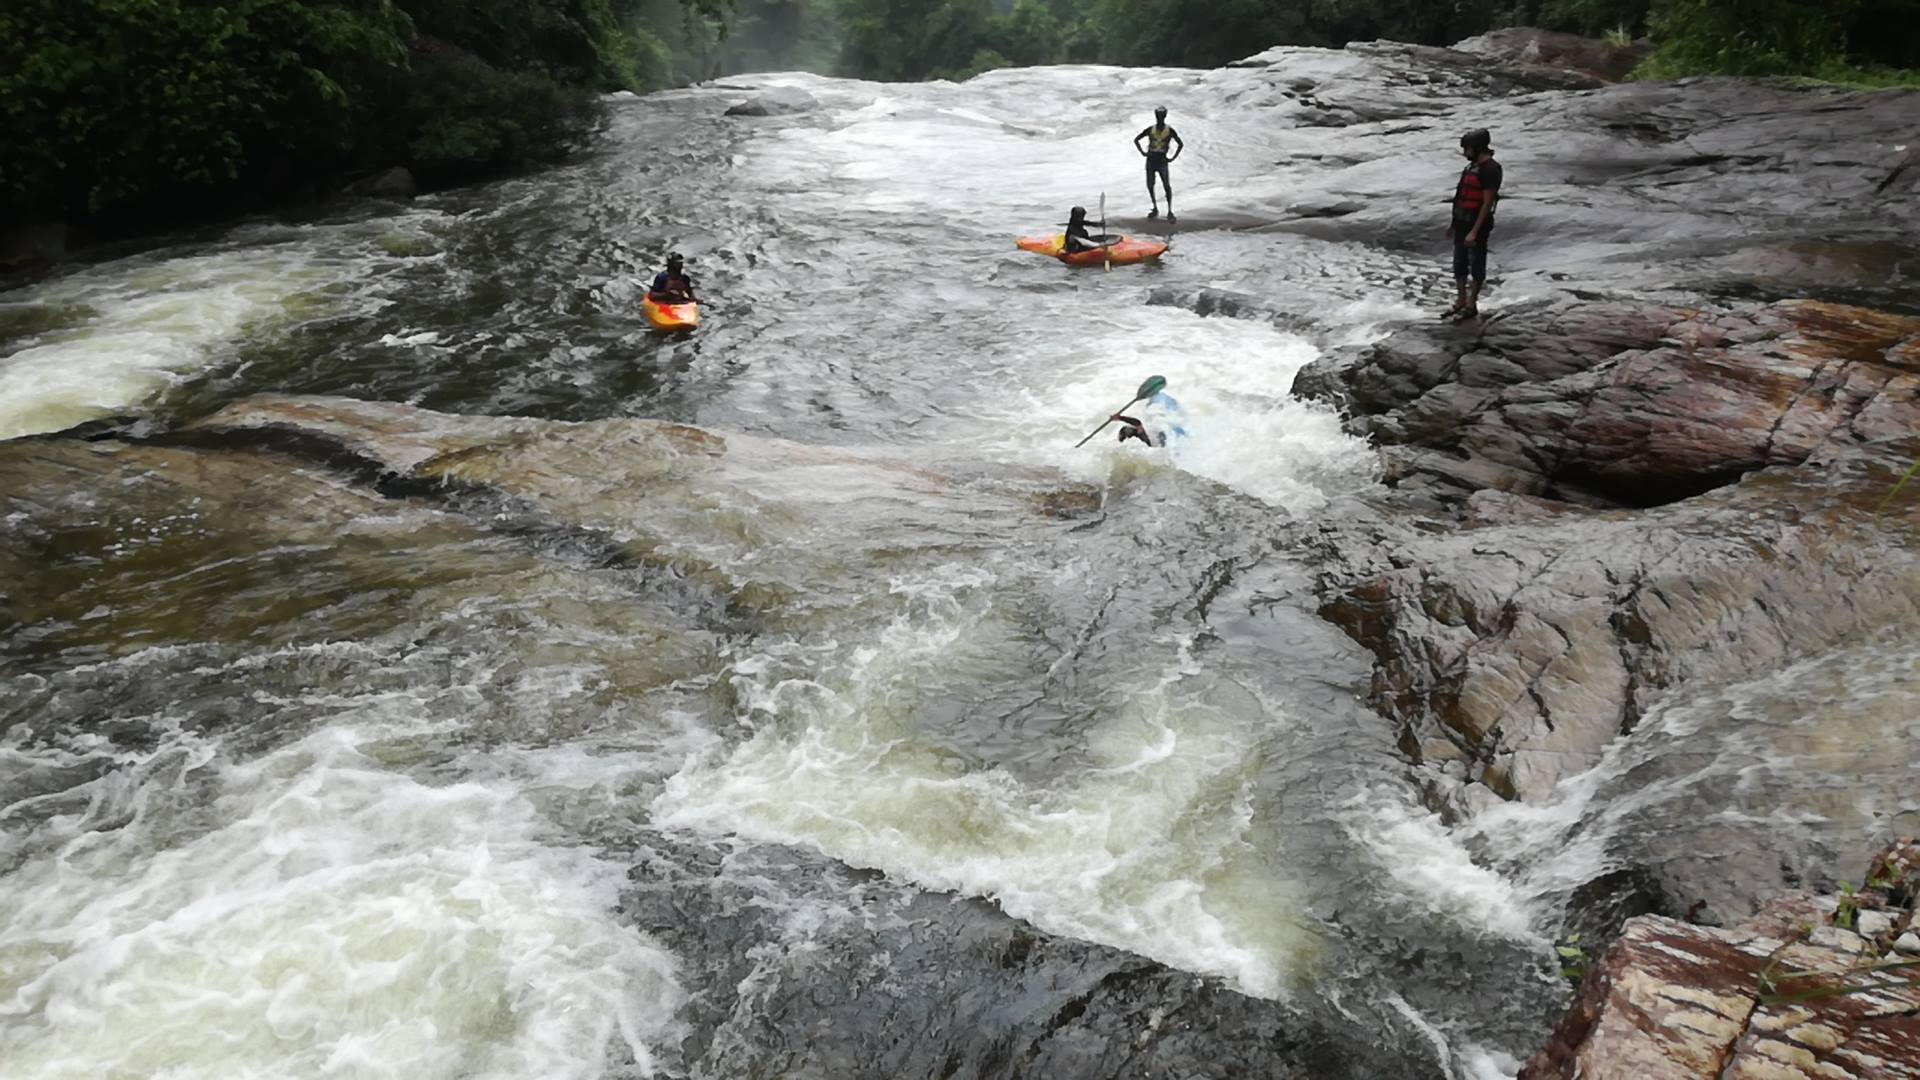 Kayaking in Sri Lanka on the Kelani river in Kithulgala